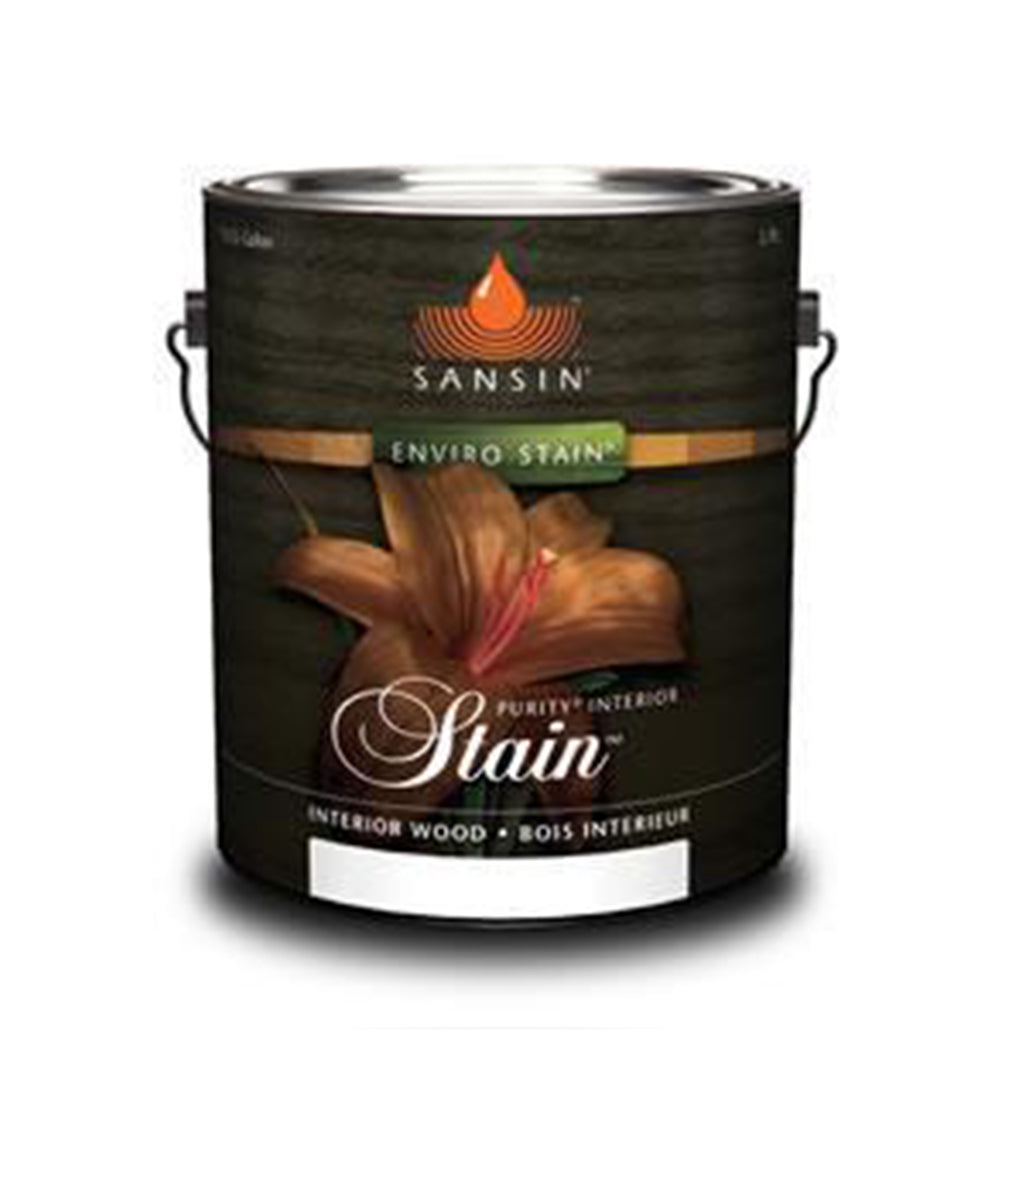 Sansin Purity Exterior Wood Stain, available at Catalina Paints in CA.